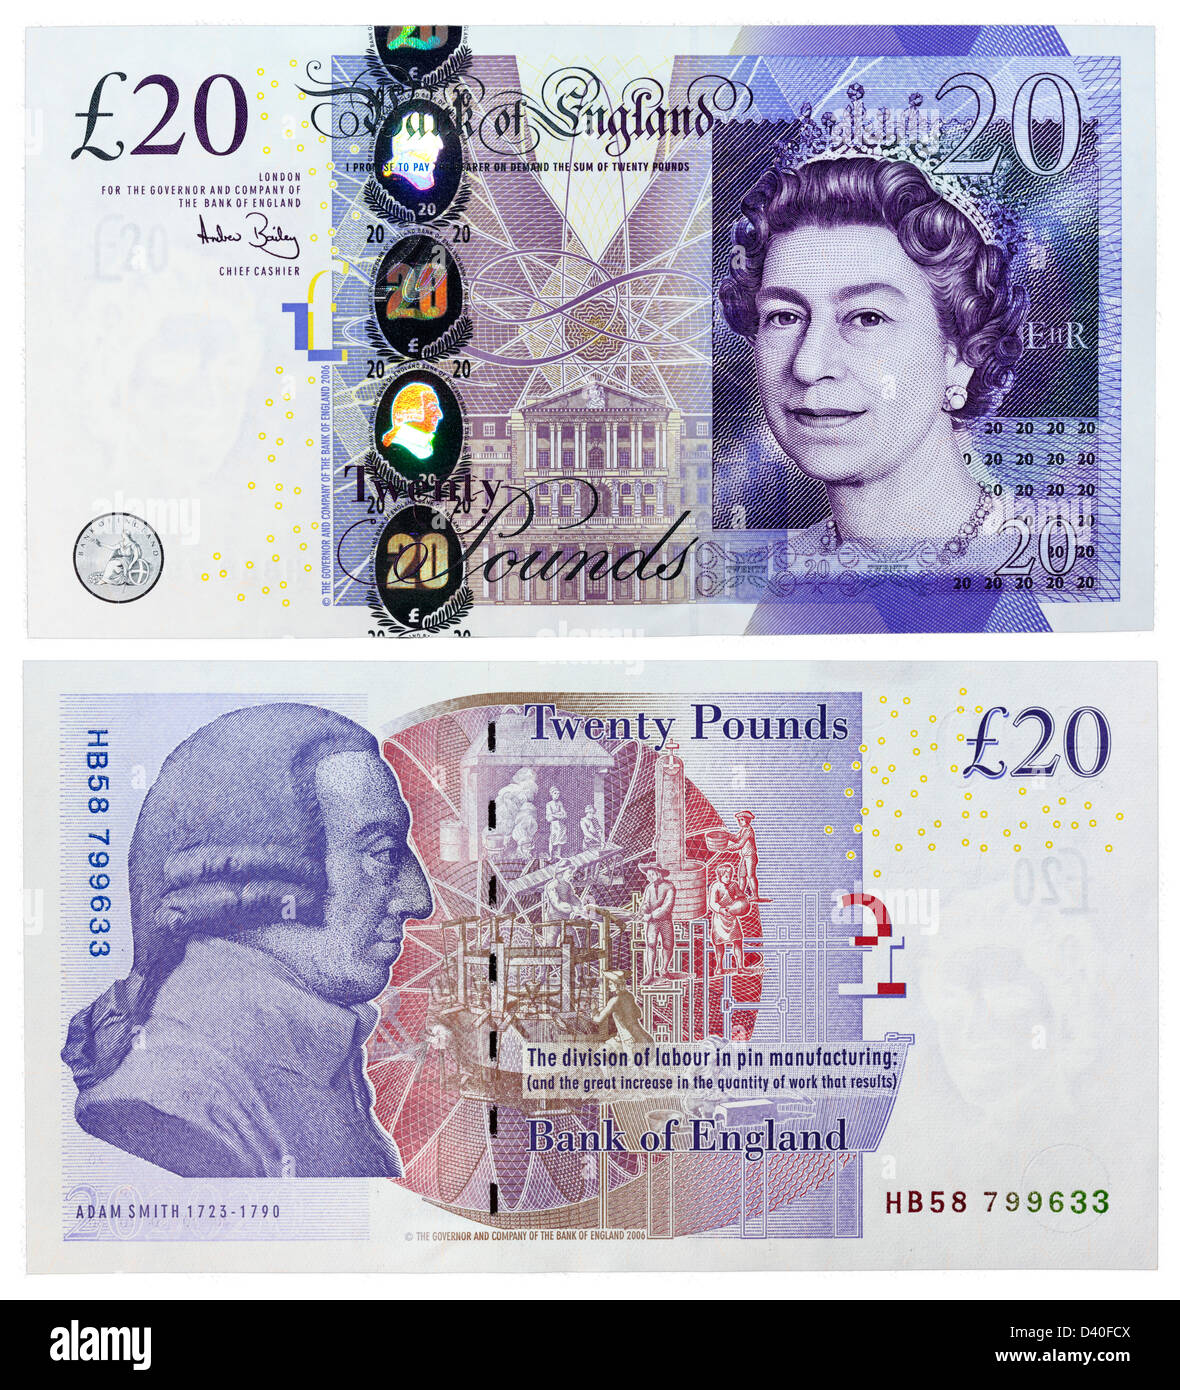 20 Pounds banknote, Queen Elizabeth II, Adam Smith and pin factory, UK, 2006 - Stock Image